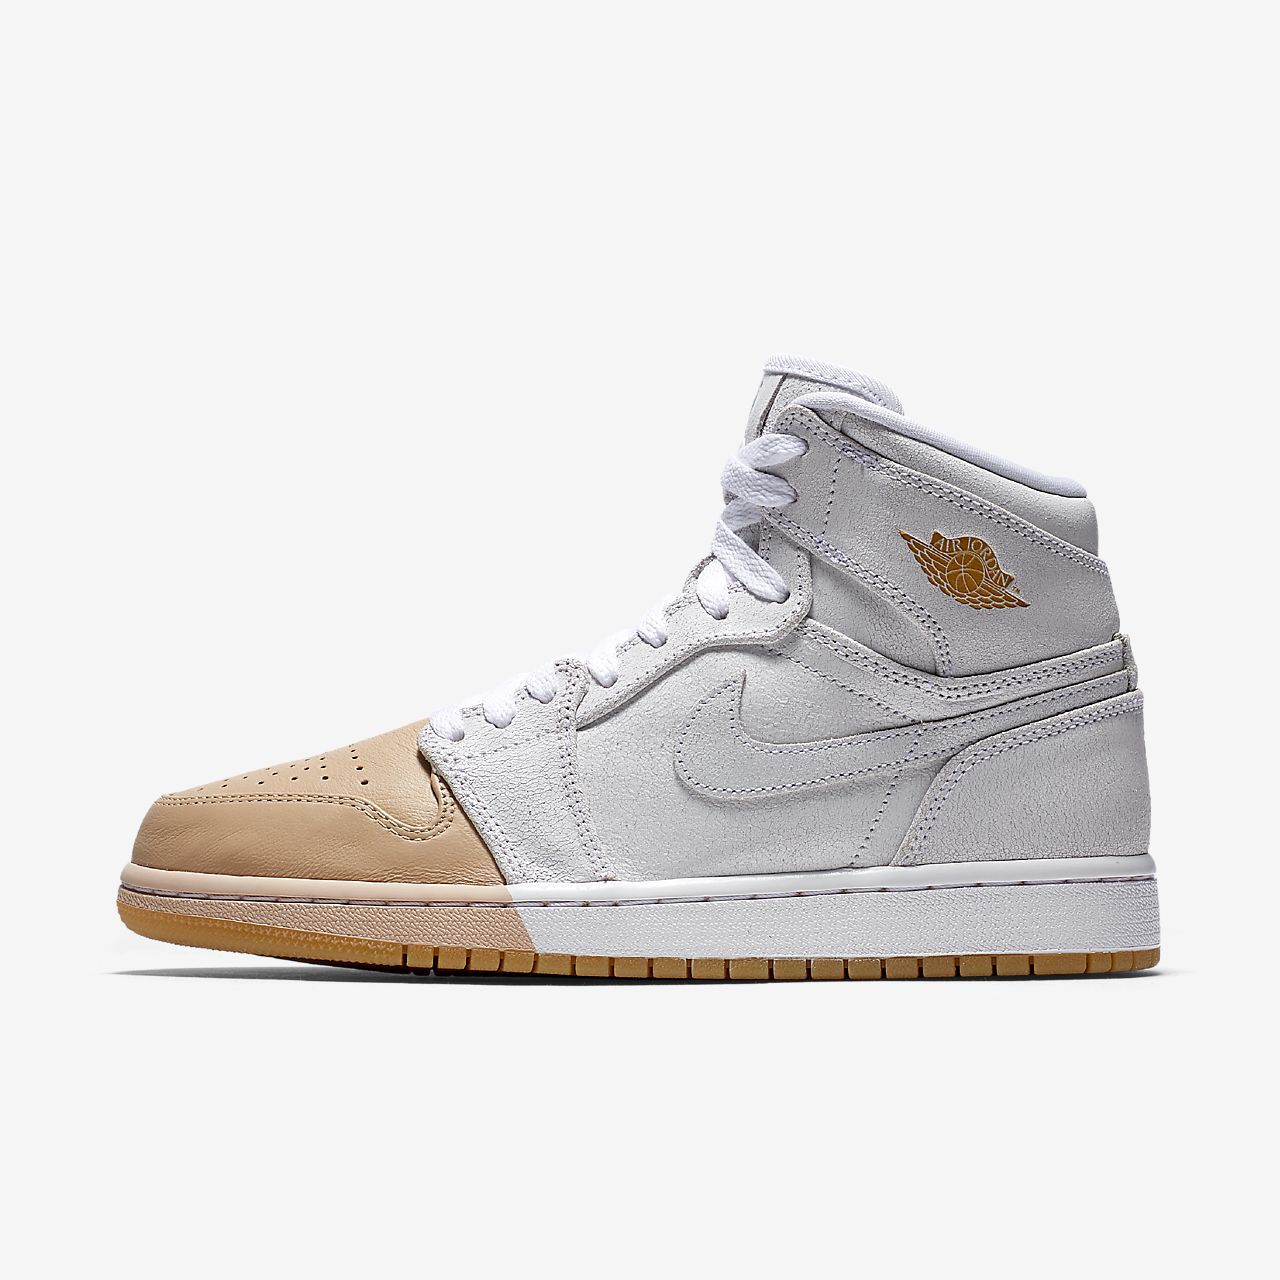 452a17bd891a8c Nike Air Jordan 1 Retro High Premium Women s Shoe. Nike.com NZ